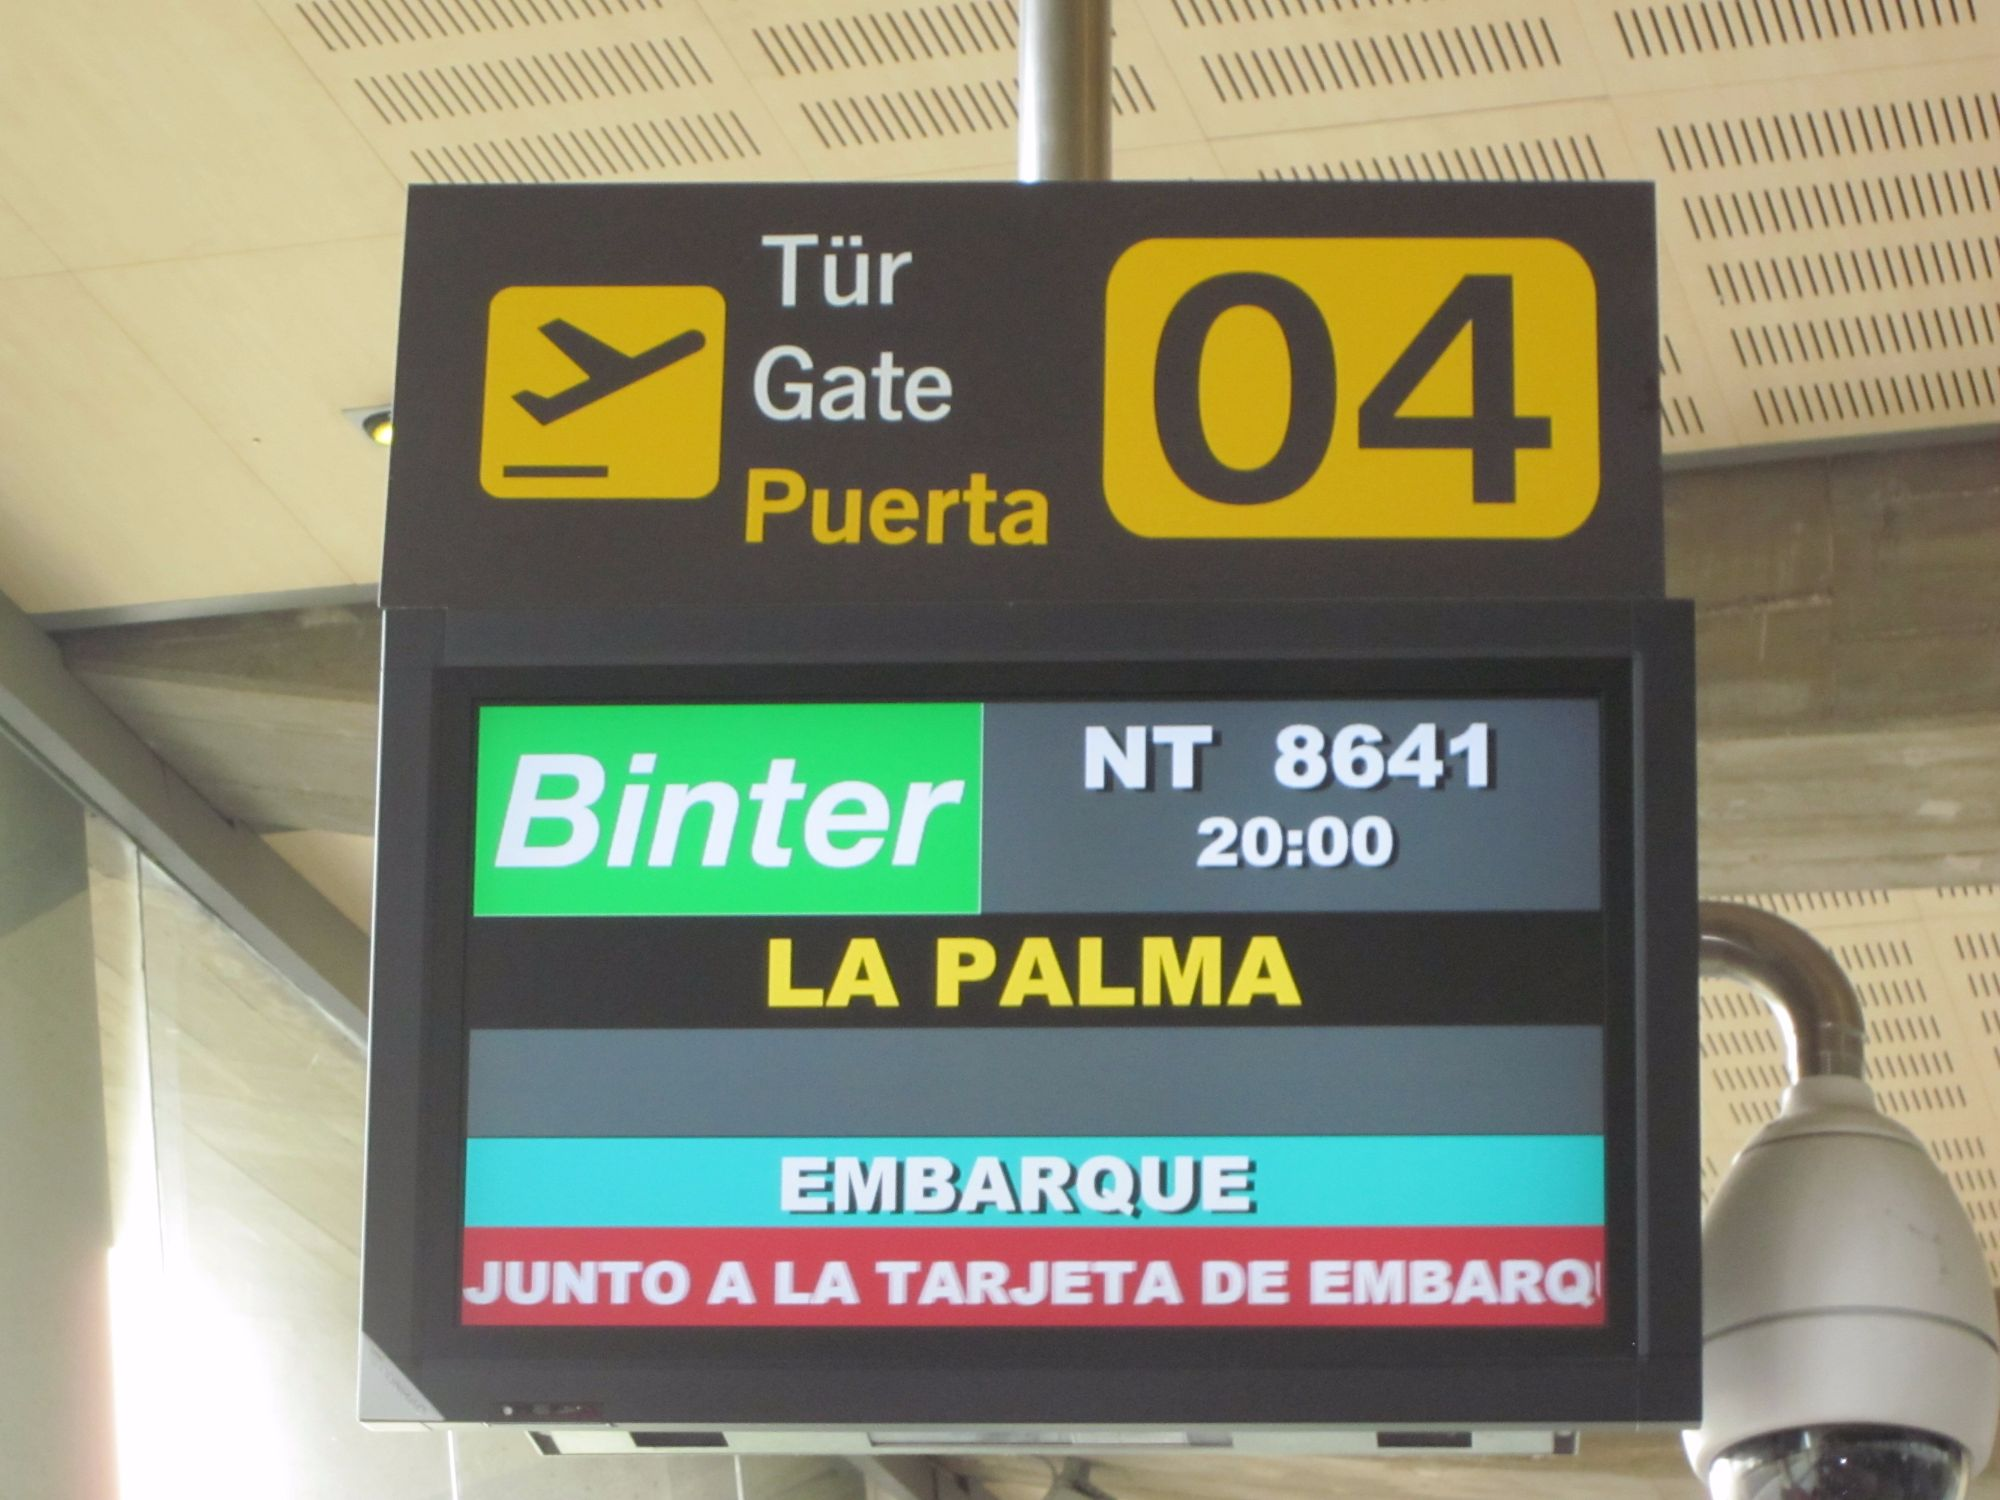 Flights to La Palma from Tenerife and Gran Canaria